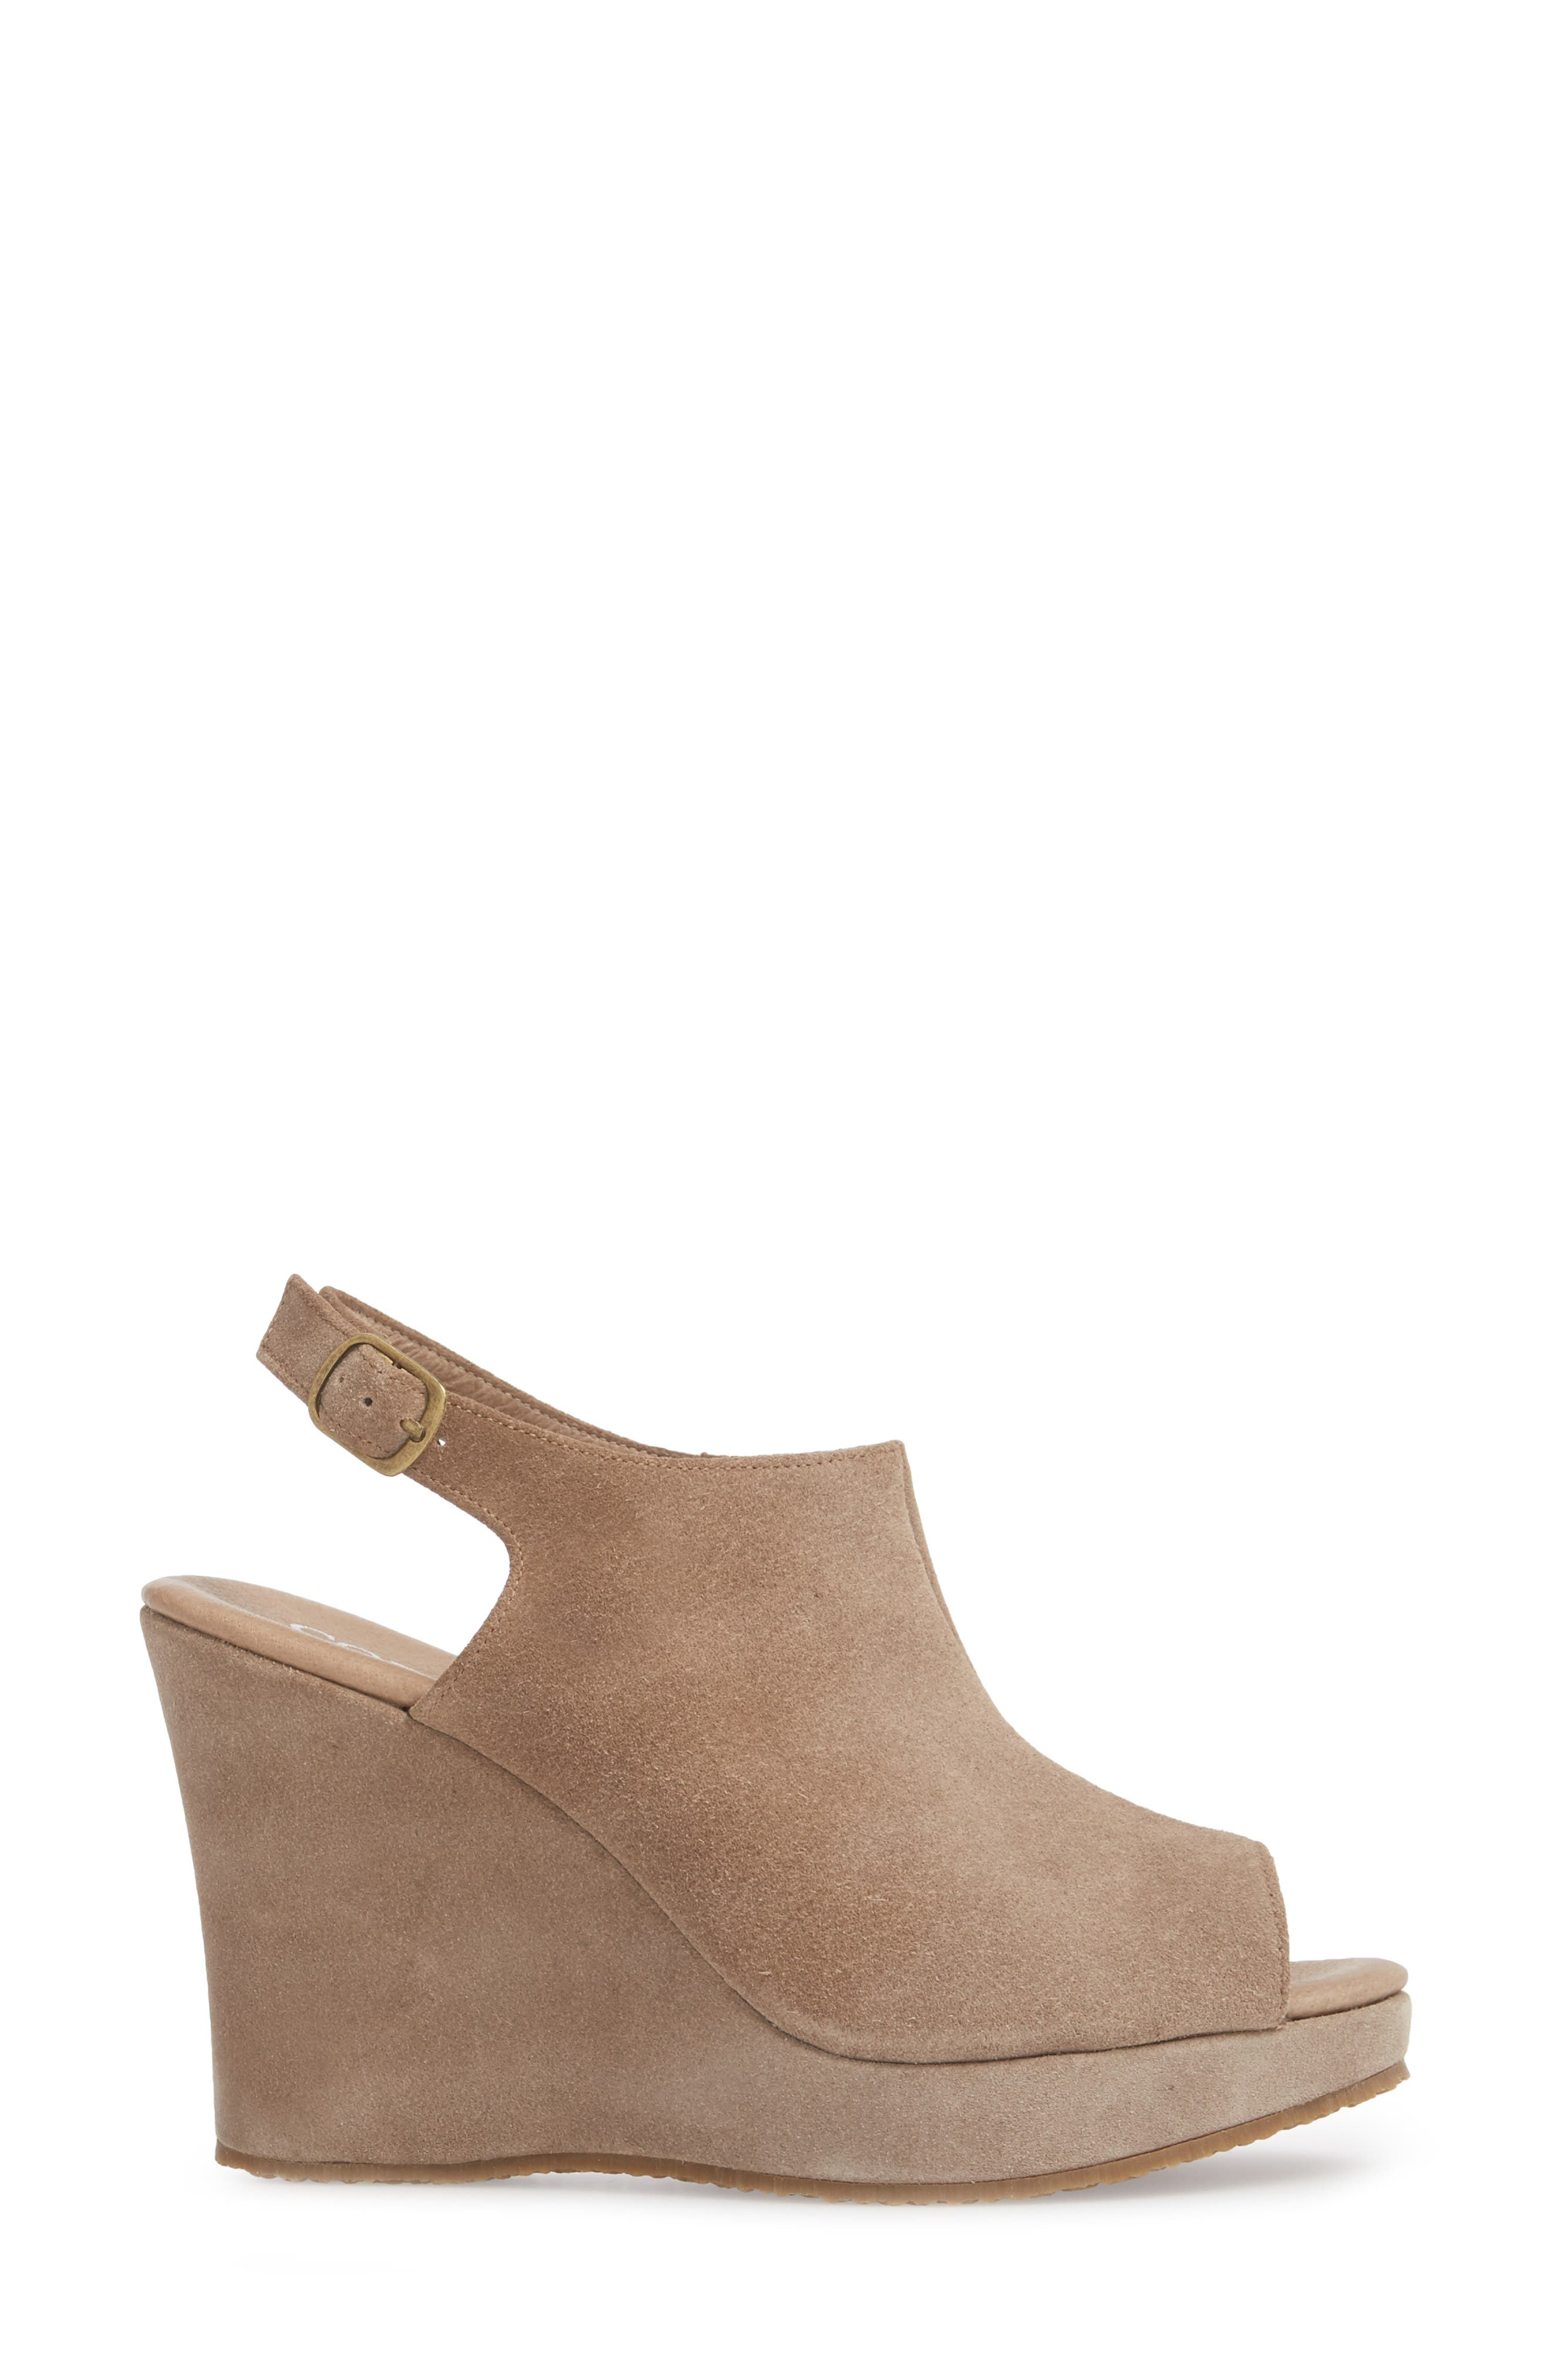 'Wellesley' Sandal,                             Alternate thumbnail 3, color,                             Taupe Suede